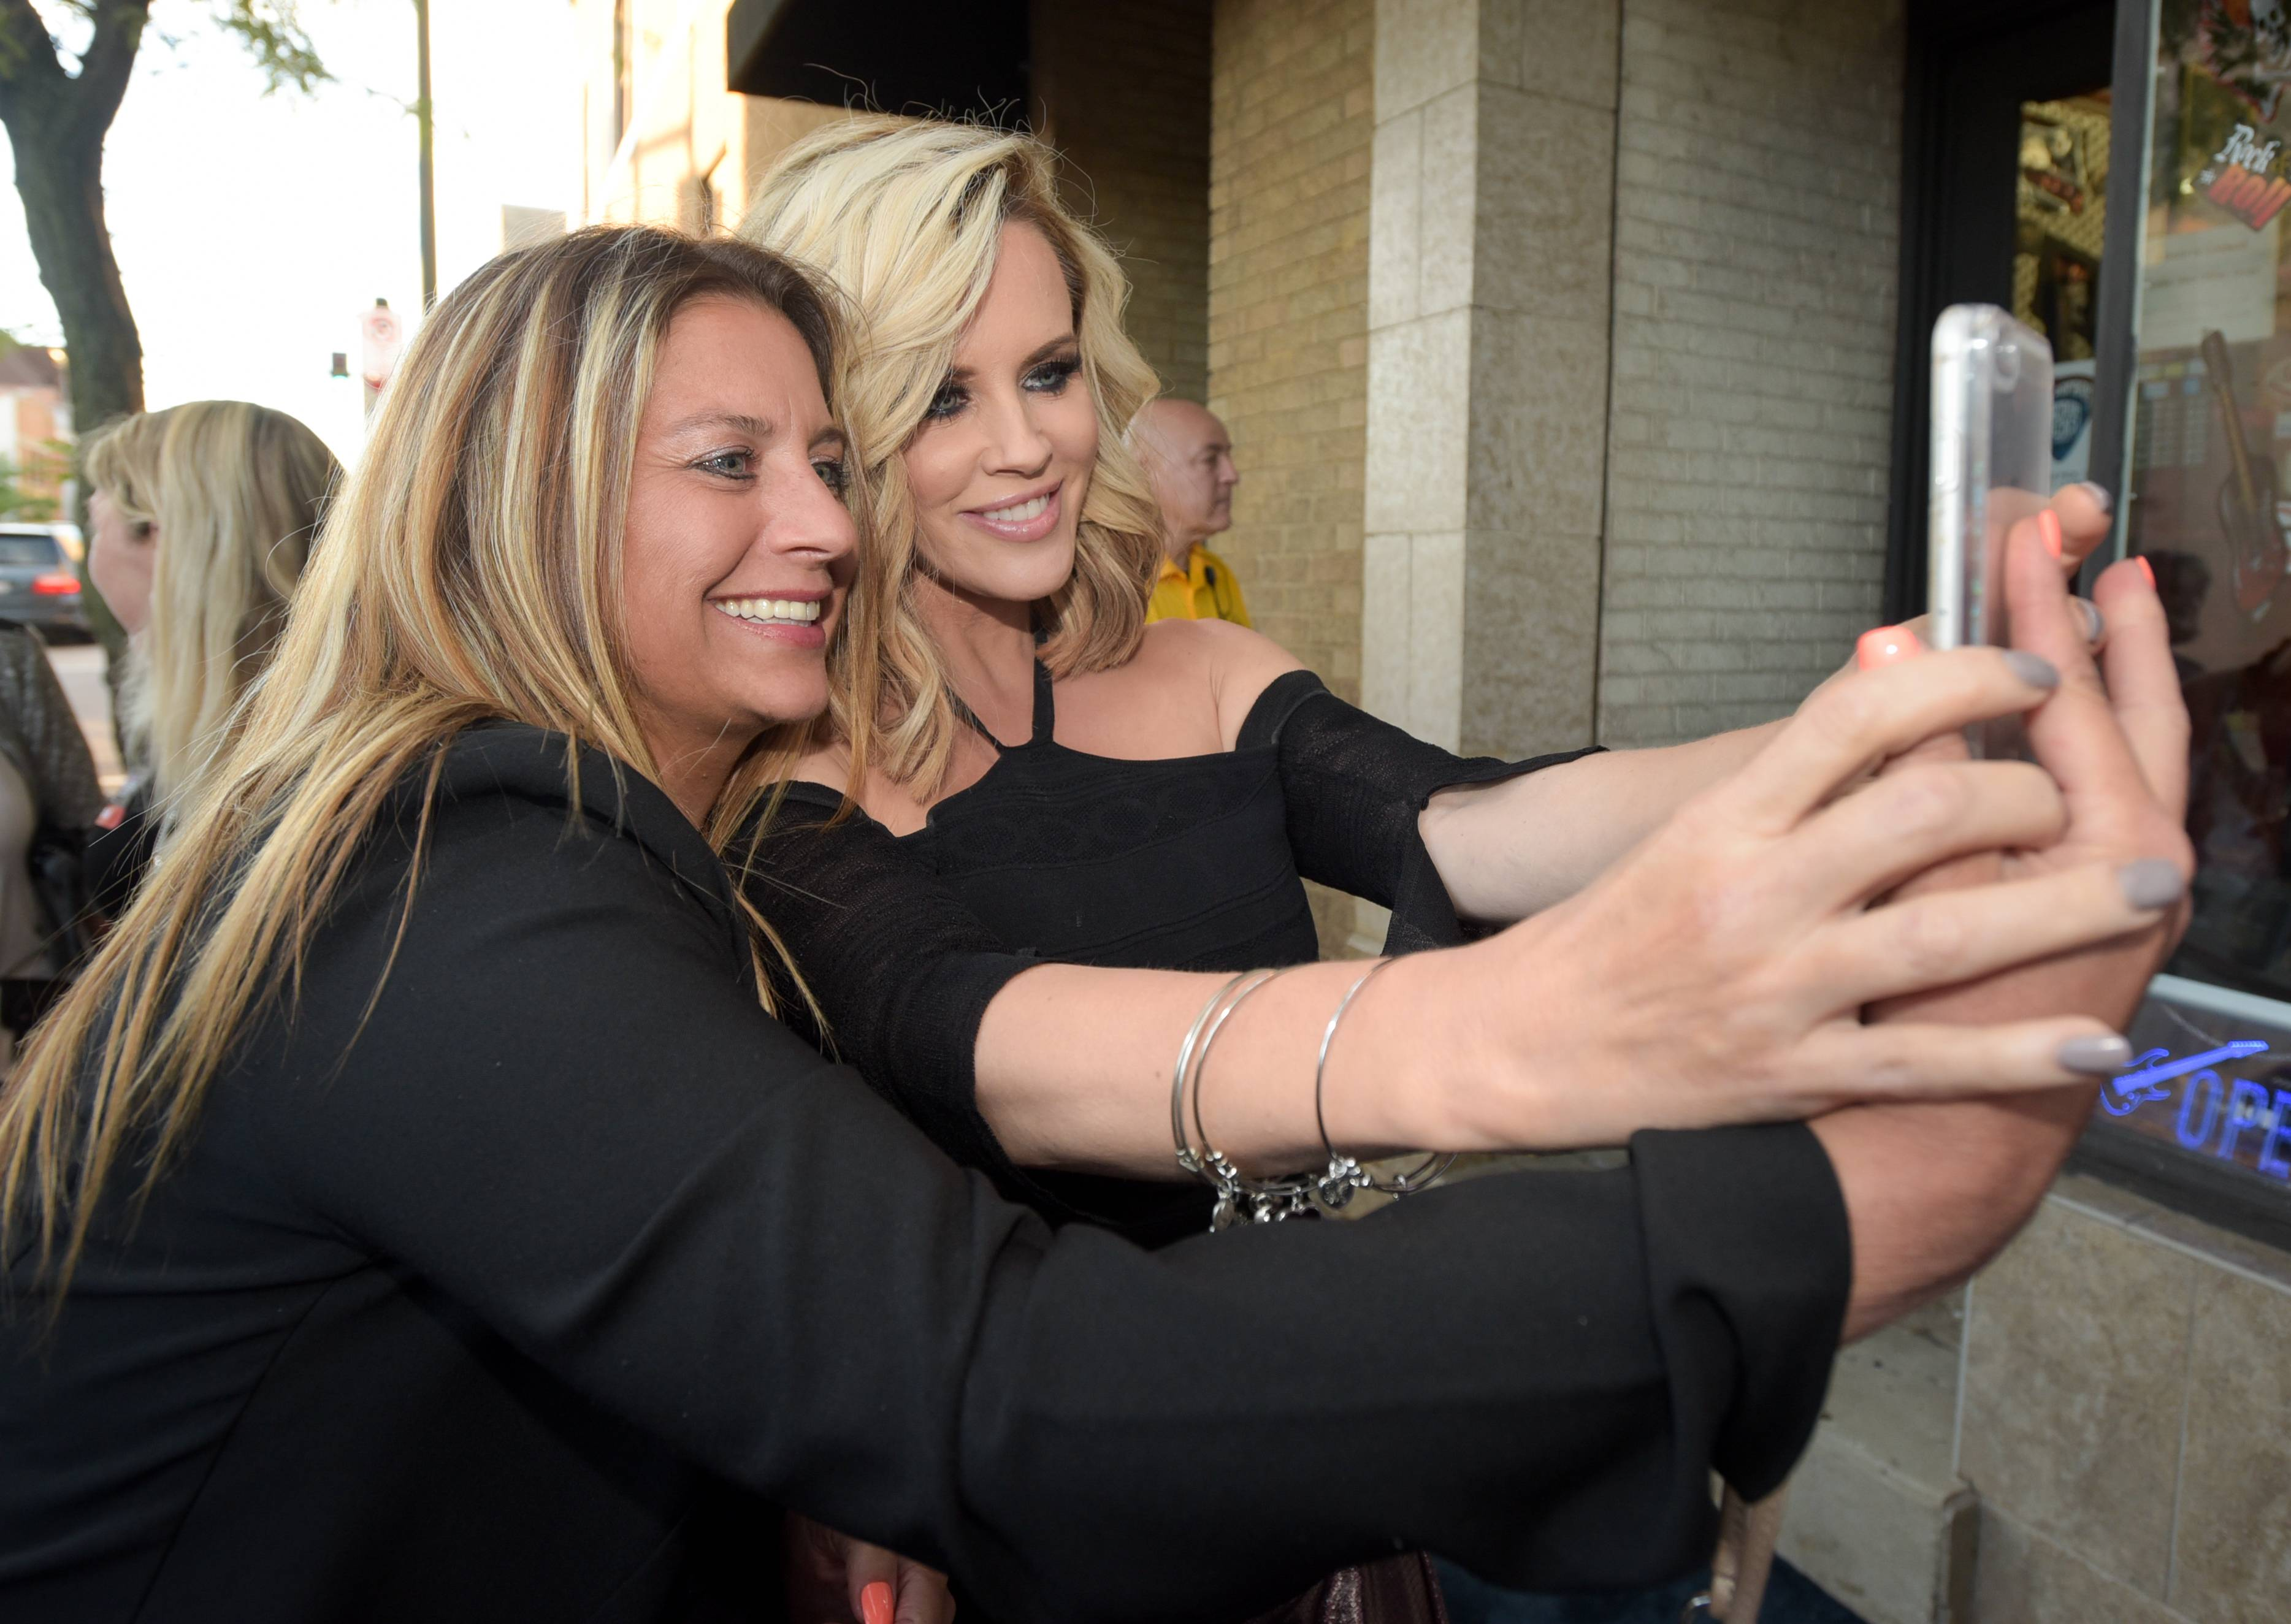 Kindergarten teacher Sherrie Klint of Elburn takes a selfie with Jenny McCarthy before McCarthy's husband, Donnie Wahlberg, performs in a concert in St. Charles at the Arcada Theatre to benefit Generation Rescue, which raises money for autism treatments. McCarthy's son, Evan, was diagnosed with autism in 2005.